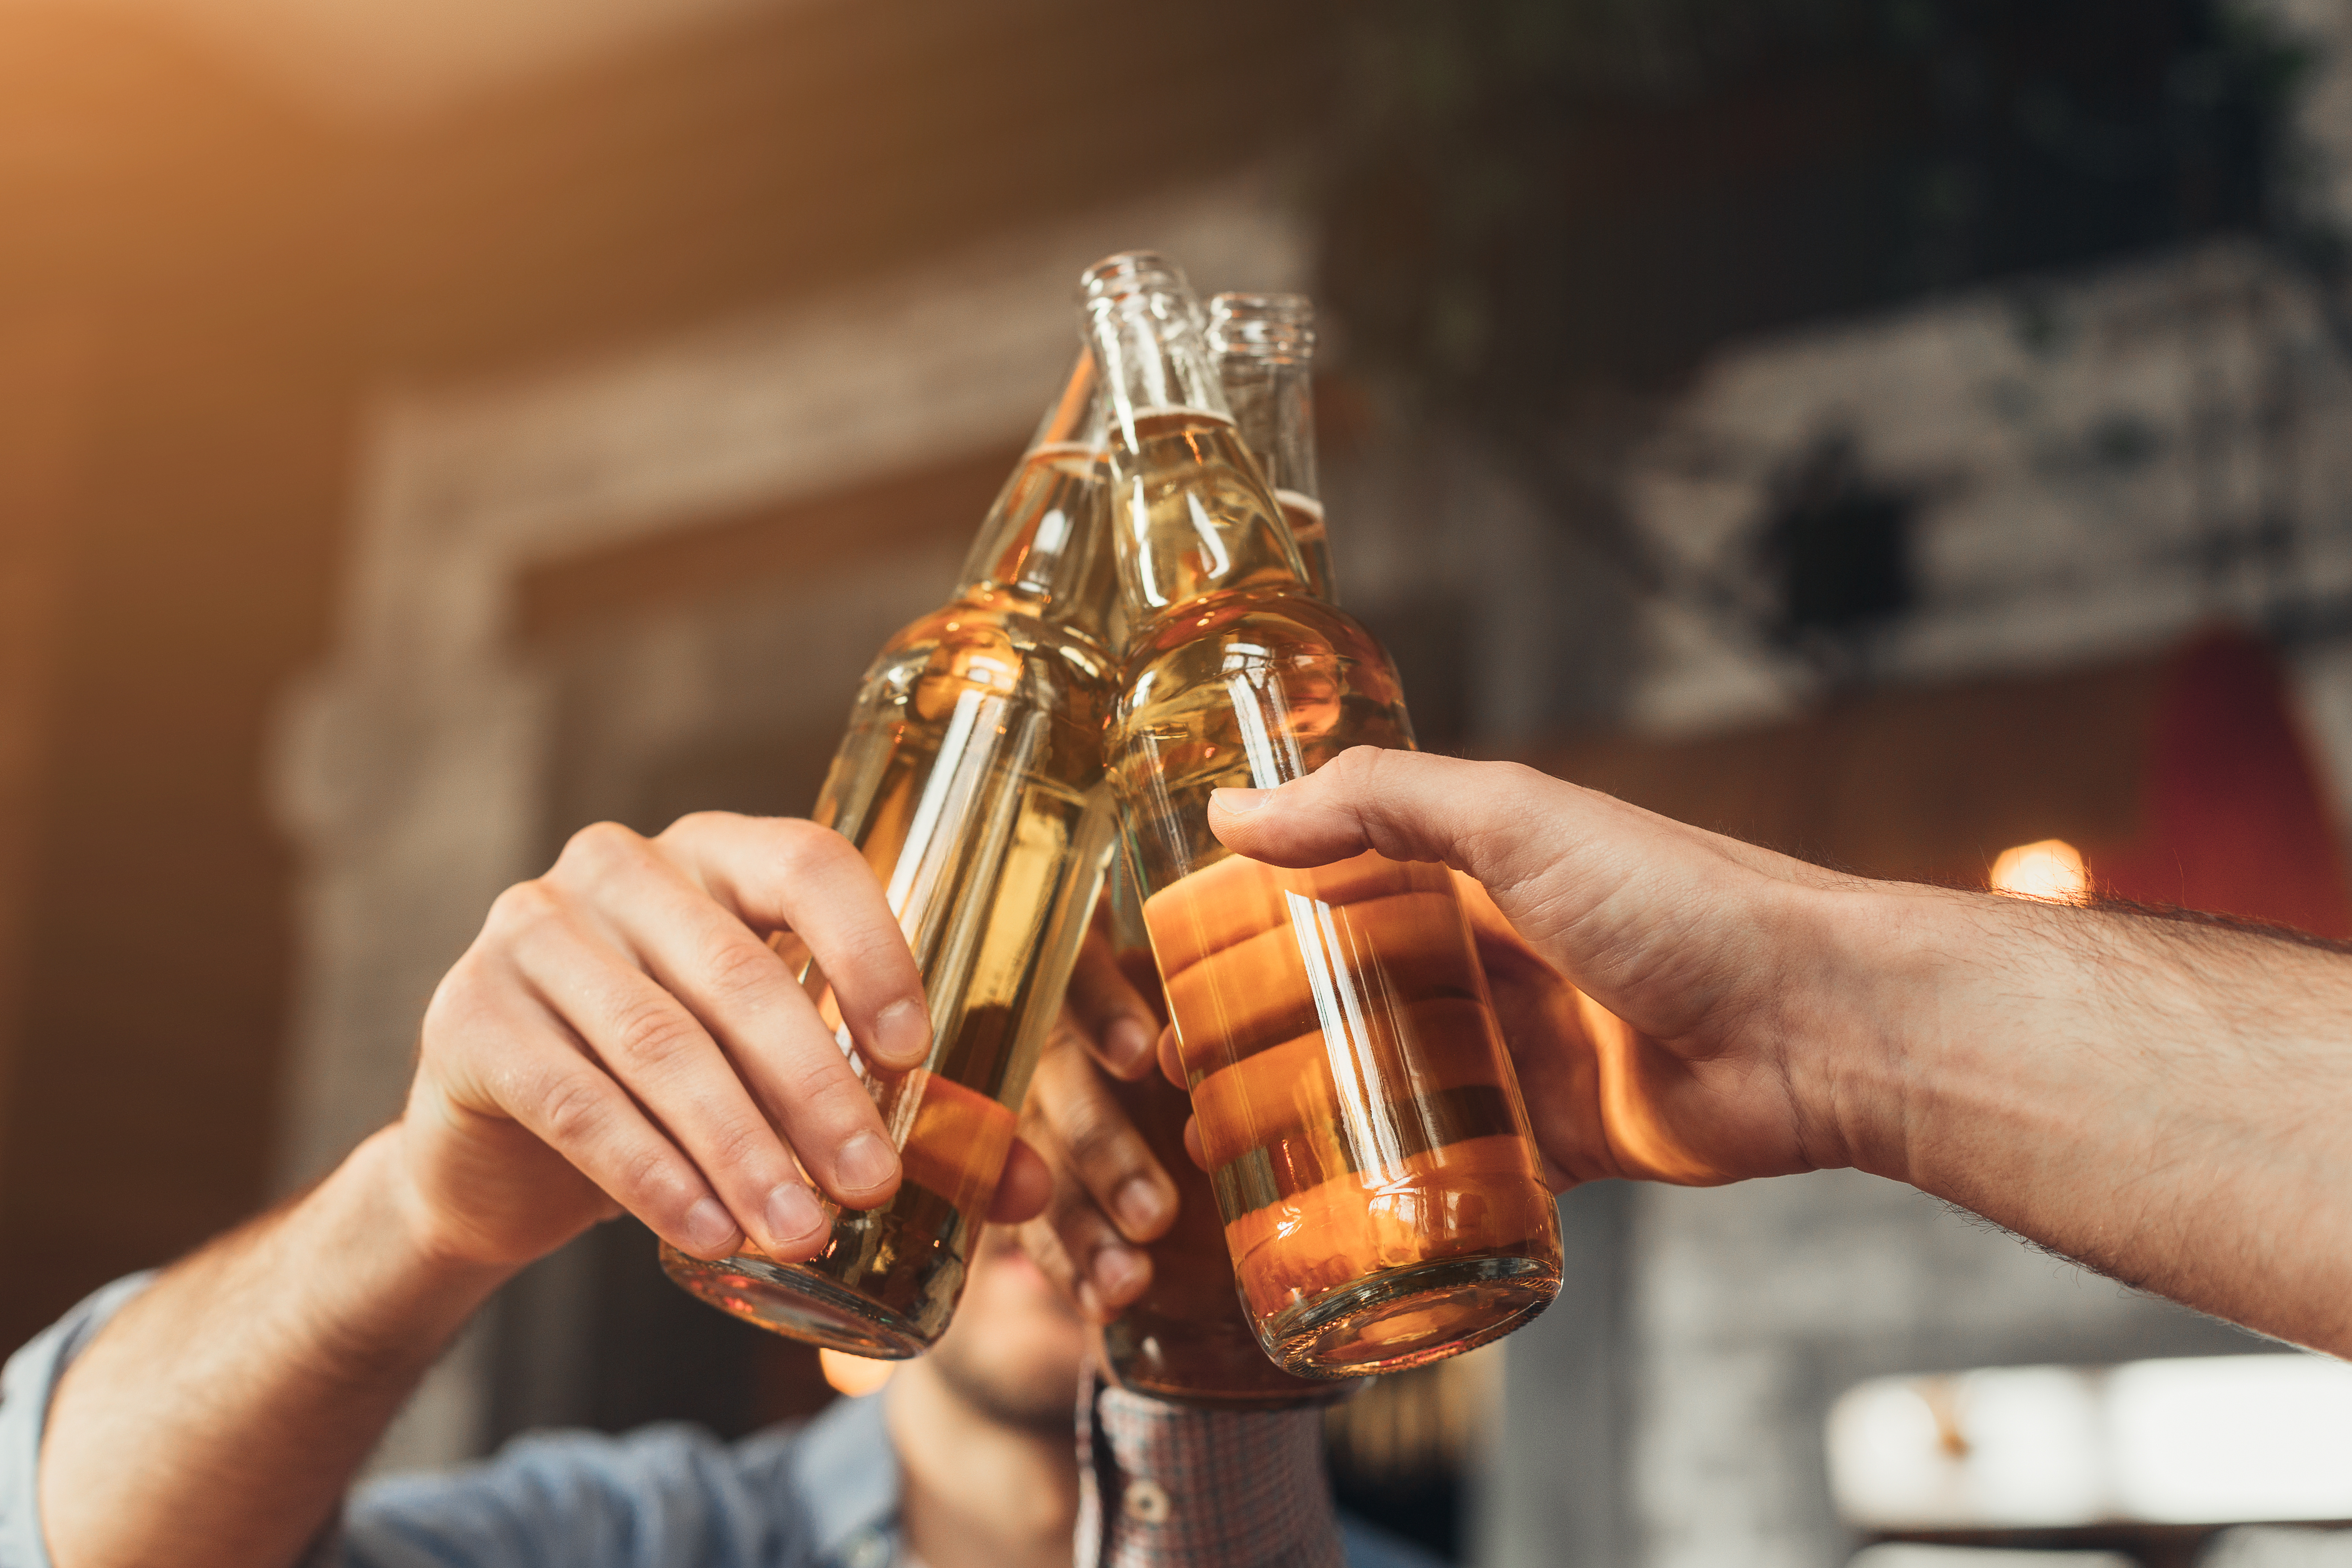 Make $165 in 90 mins! We are looking for Hispanic participants in TX to participate in a 90 mins online focus group about Adult Beverages Tuesday, September 28th!